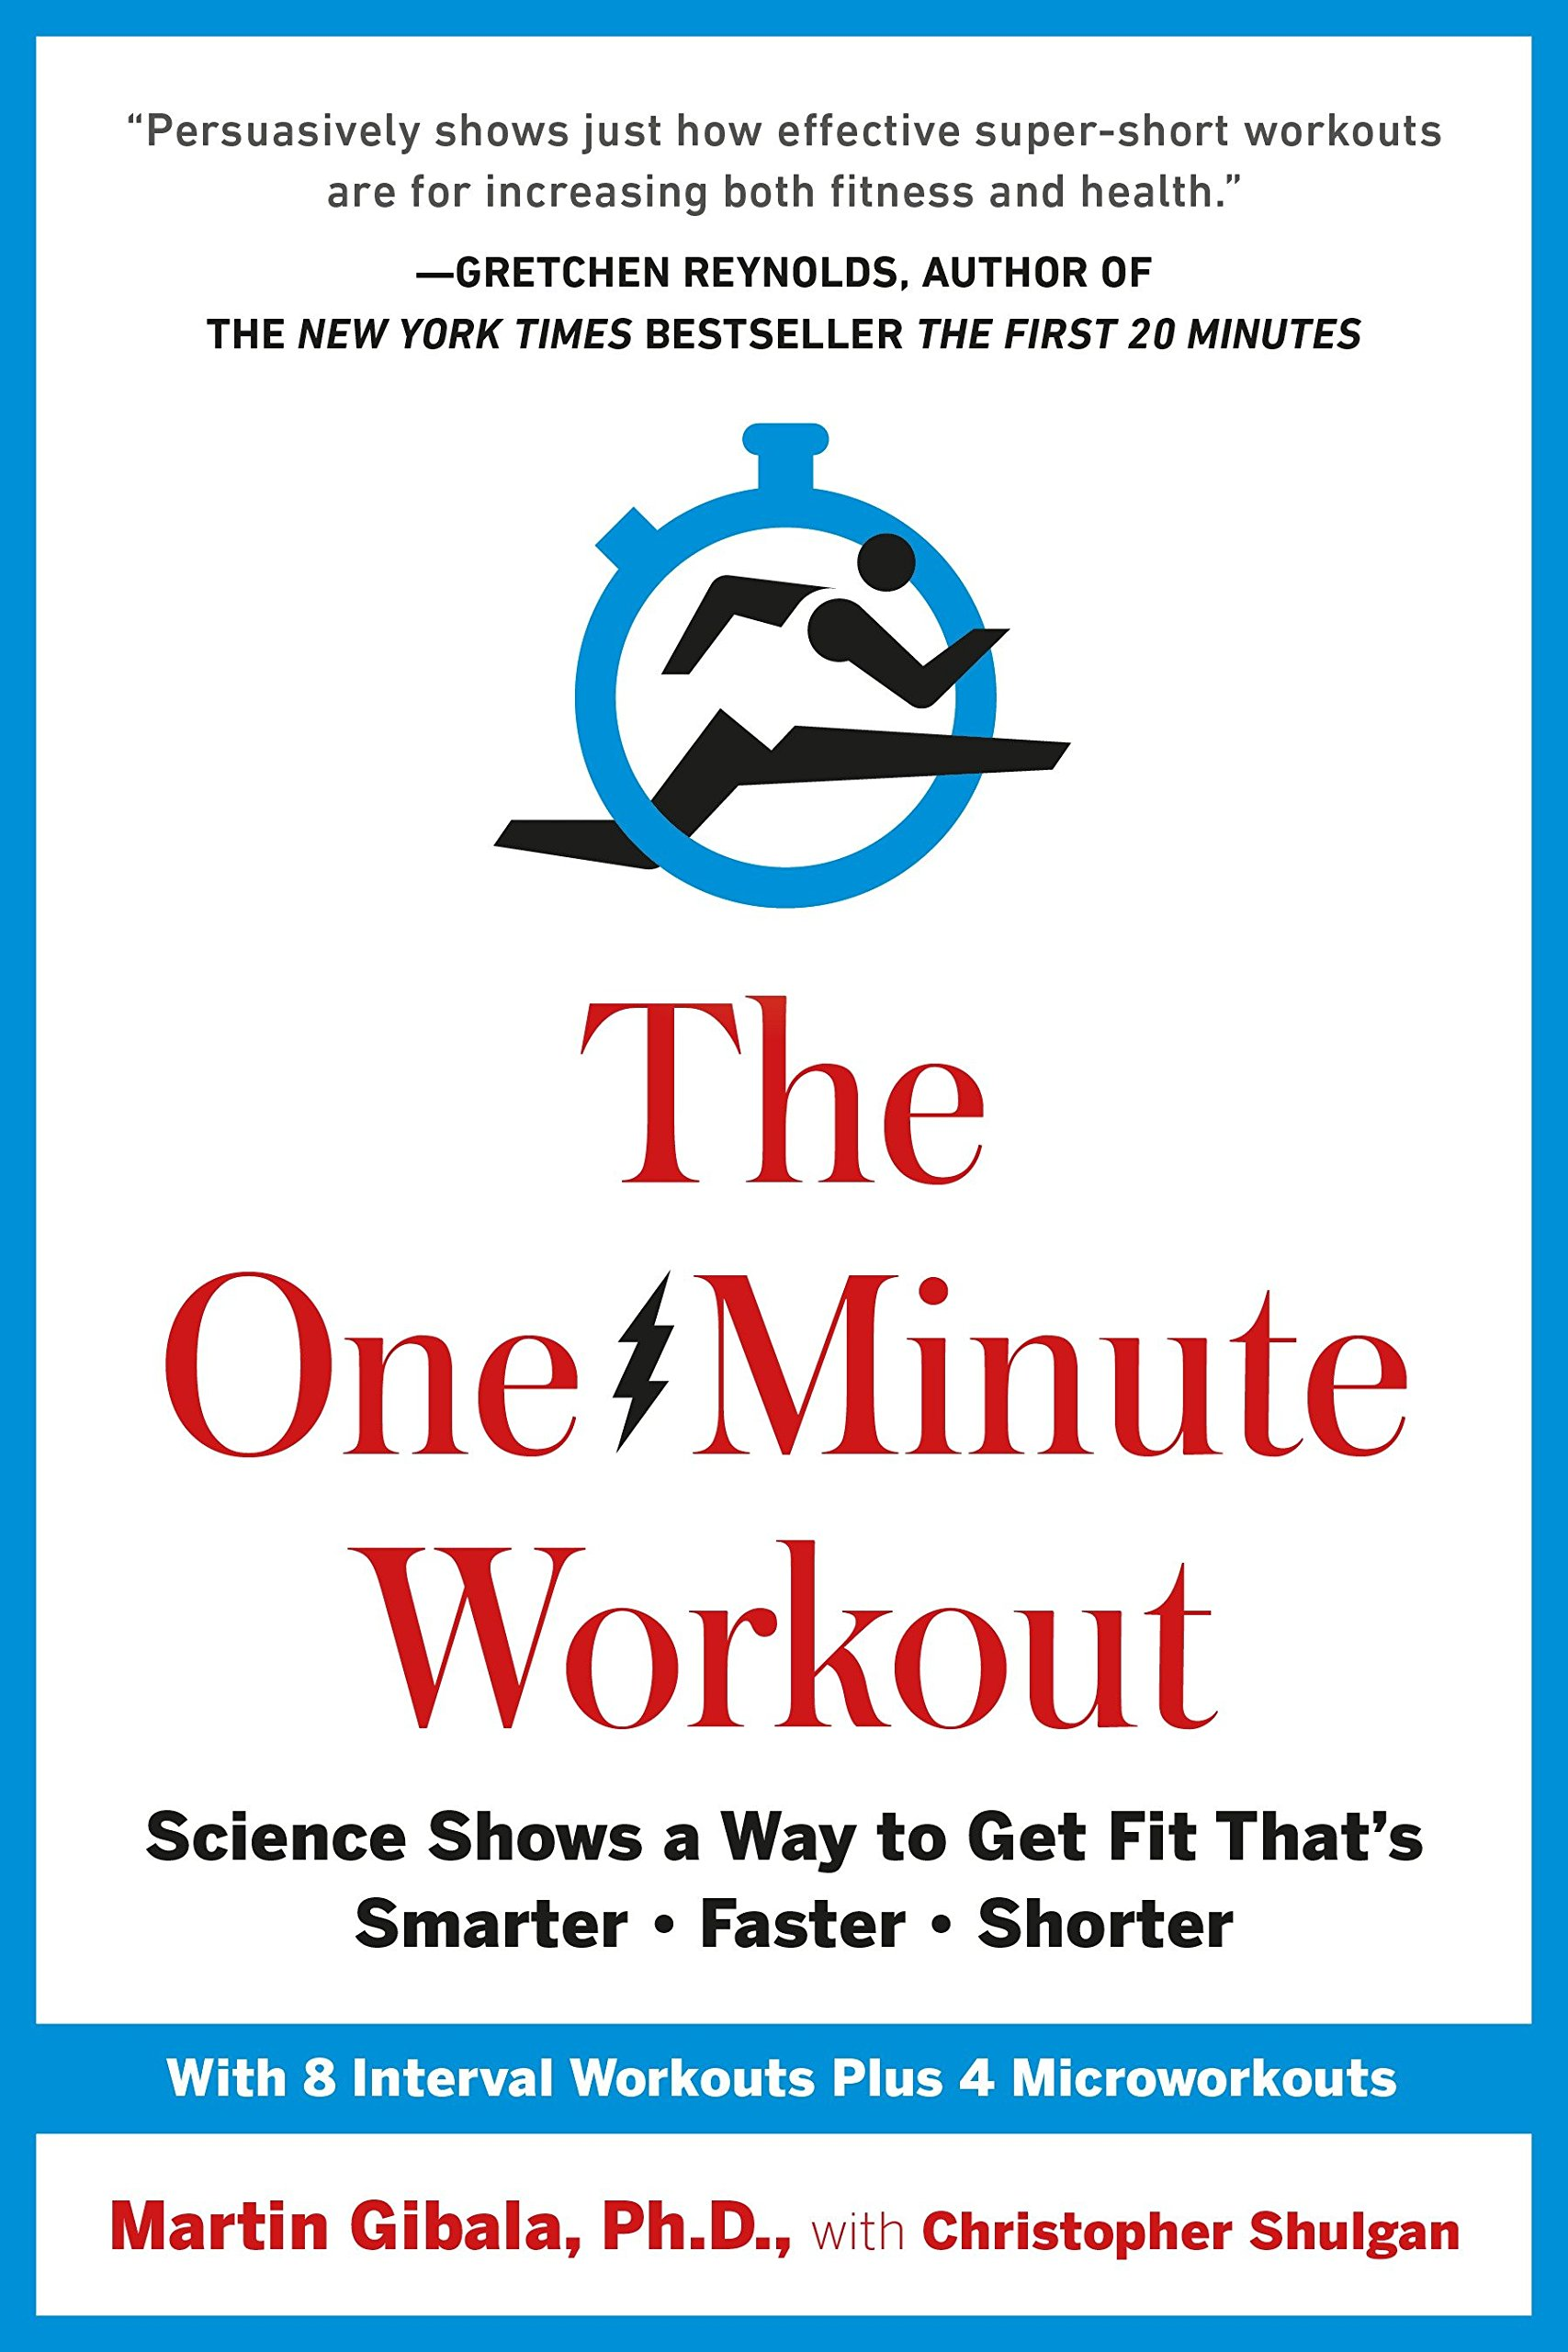 THE ONE-MINUTE WORKOUT BY DR. MARTIN GIBALA